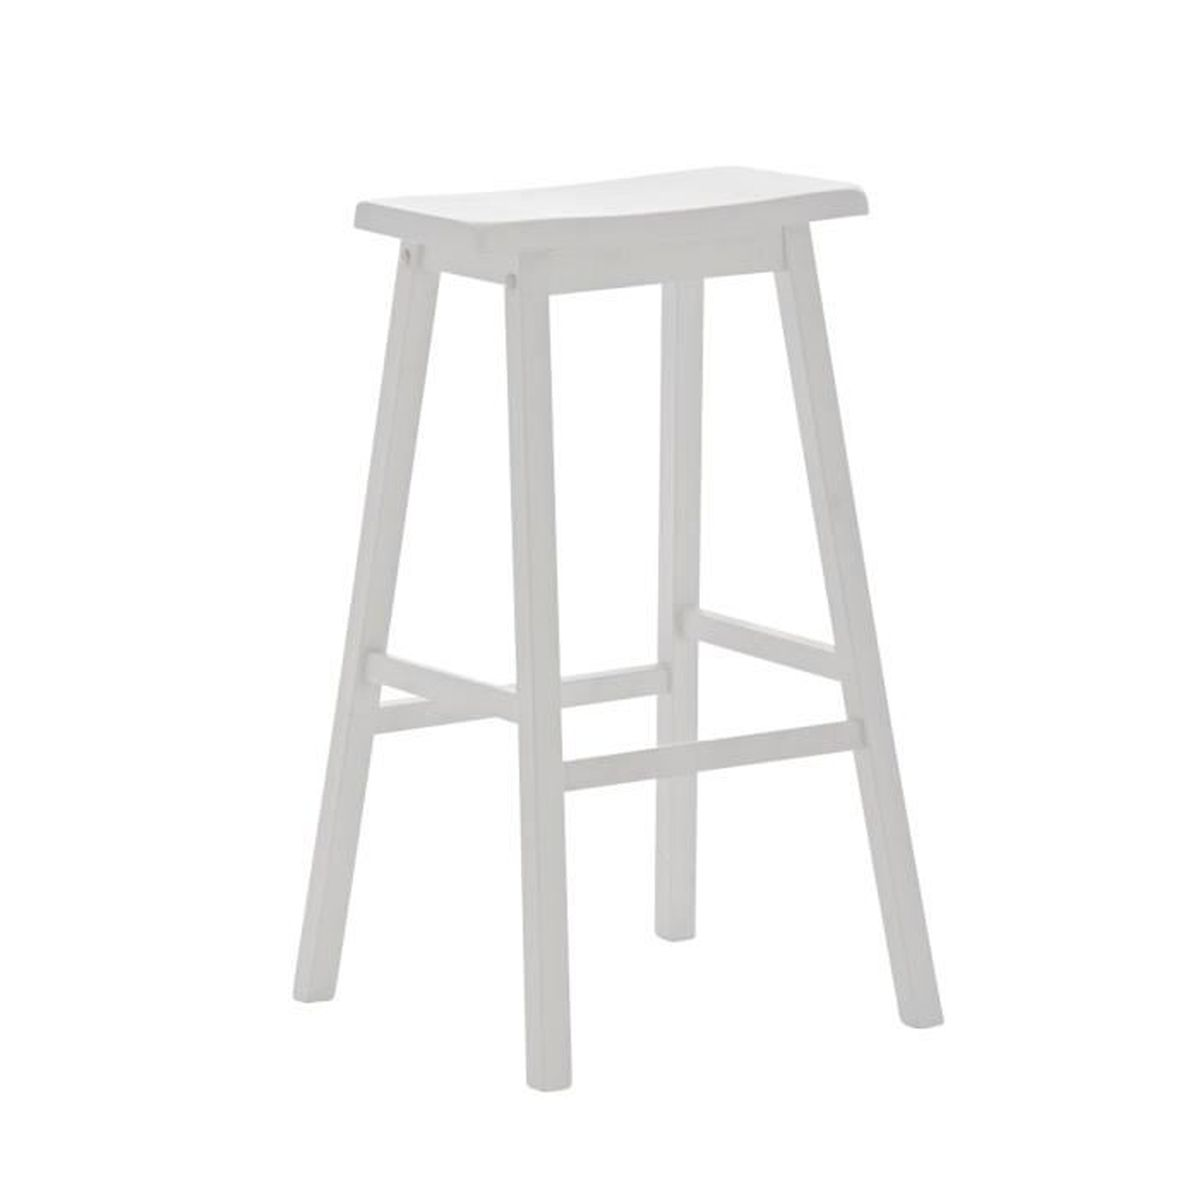 tabouret de bar en bois coloris blanc 79 x 55 x 46 cm achat vente tabouret de bar soldes. Black Bedroom Furniture Sets. Home Design Ideas